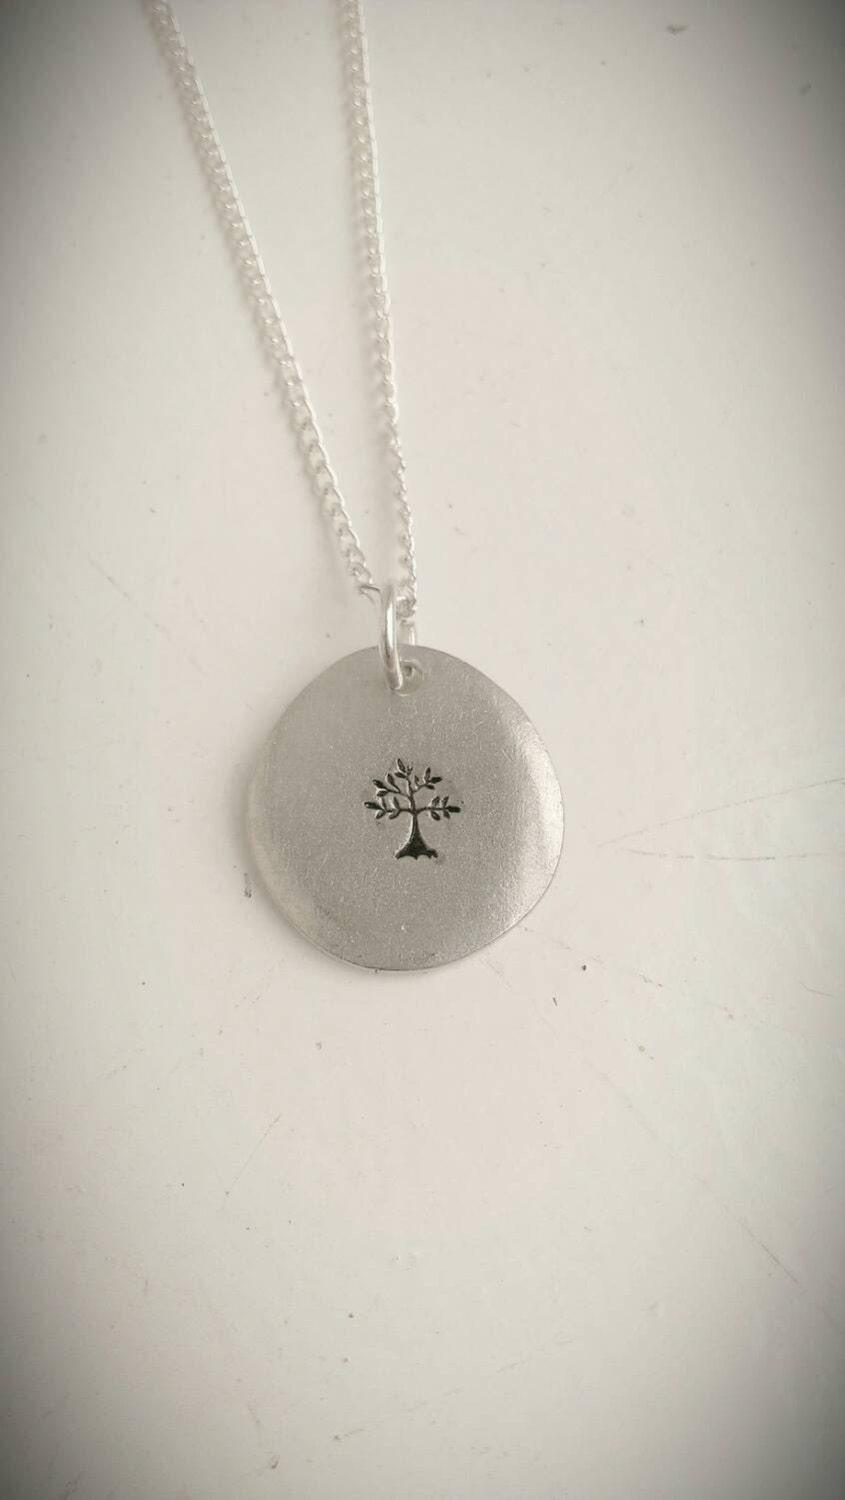 Tree necklace - nature jewellery - pagan jewelry - spiritual necklace - Spring, nature, hippie, boho jewellery